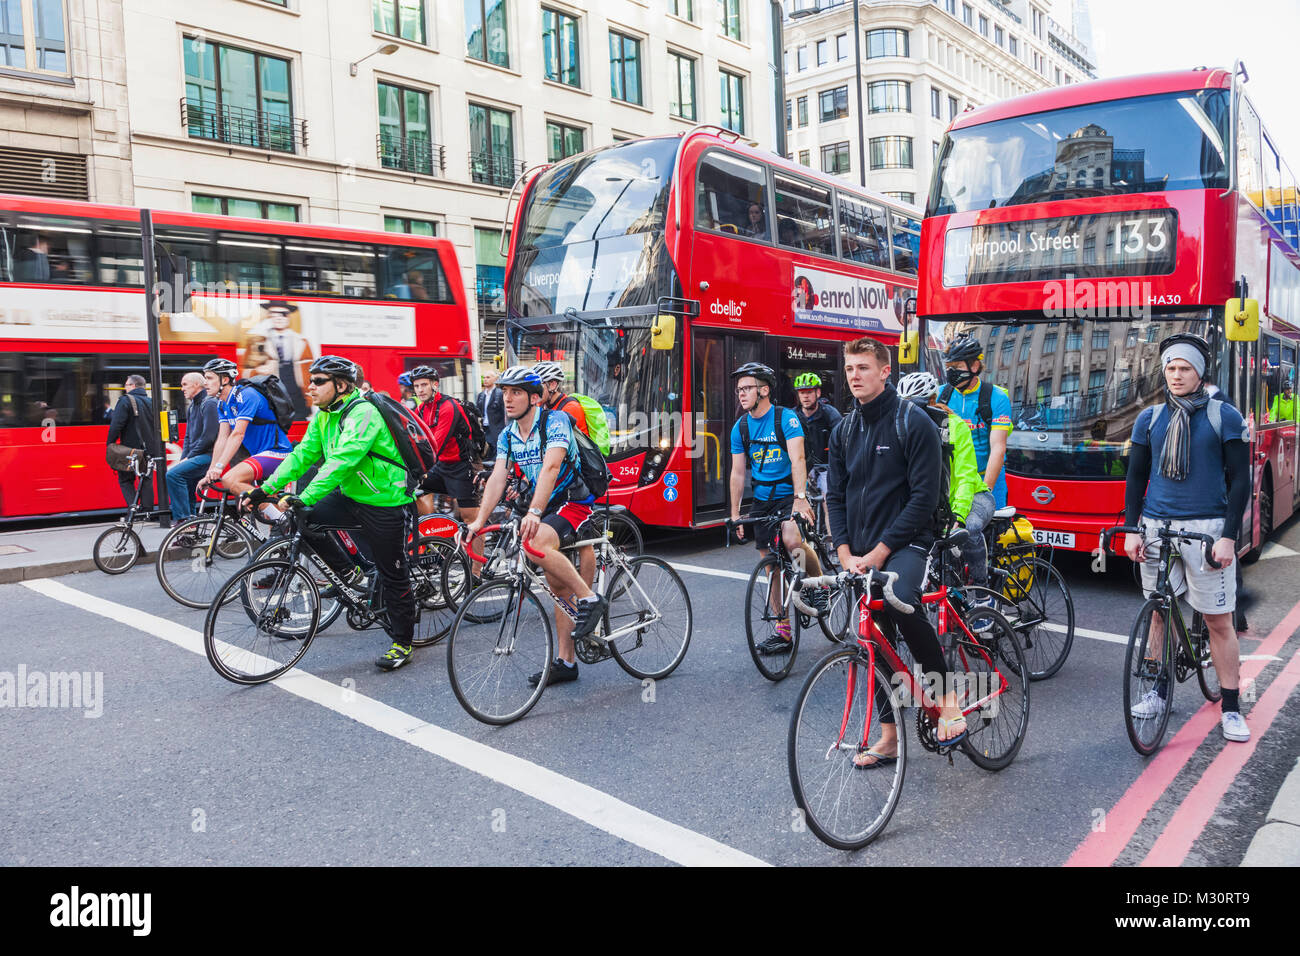 England, London, London Bridge, Cyclists Commuting to Work - Stock Image